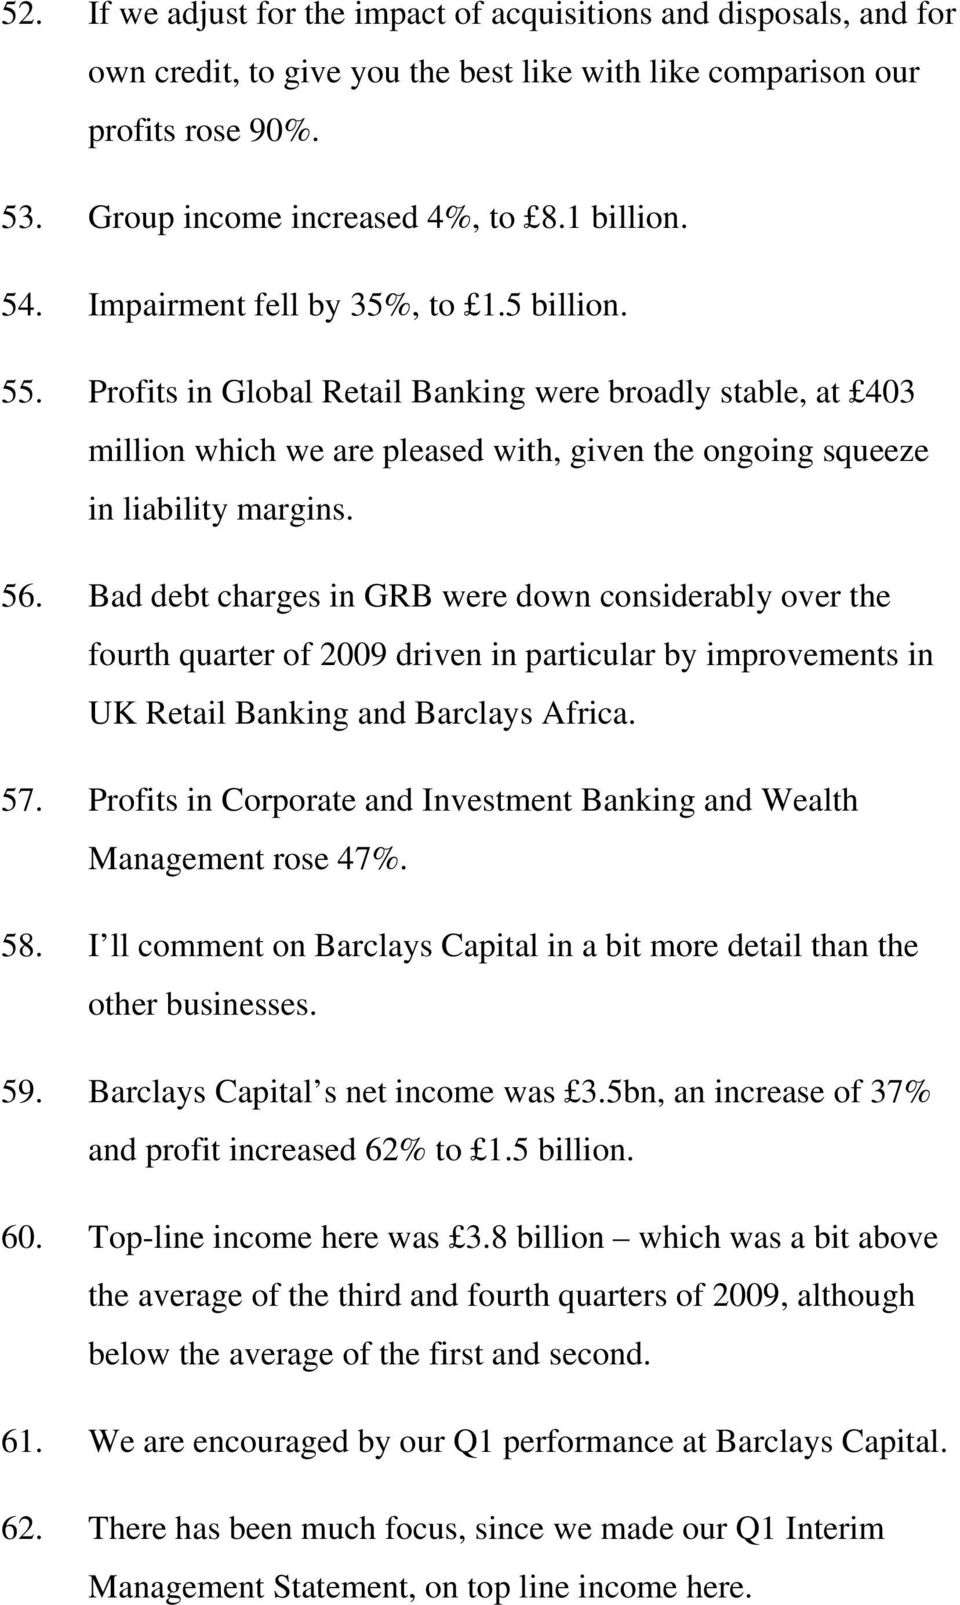 Bad debt charges in GRB were down considerably over the fourth quarter of 2009 driven in particular by improvements in UK Retail Banking and Barclays Africa. 57.